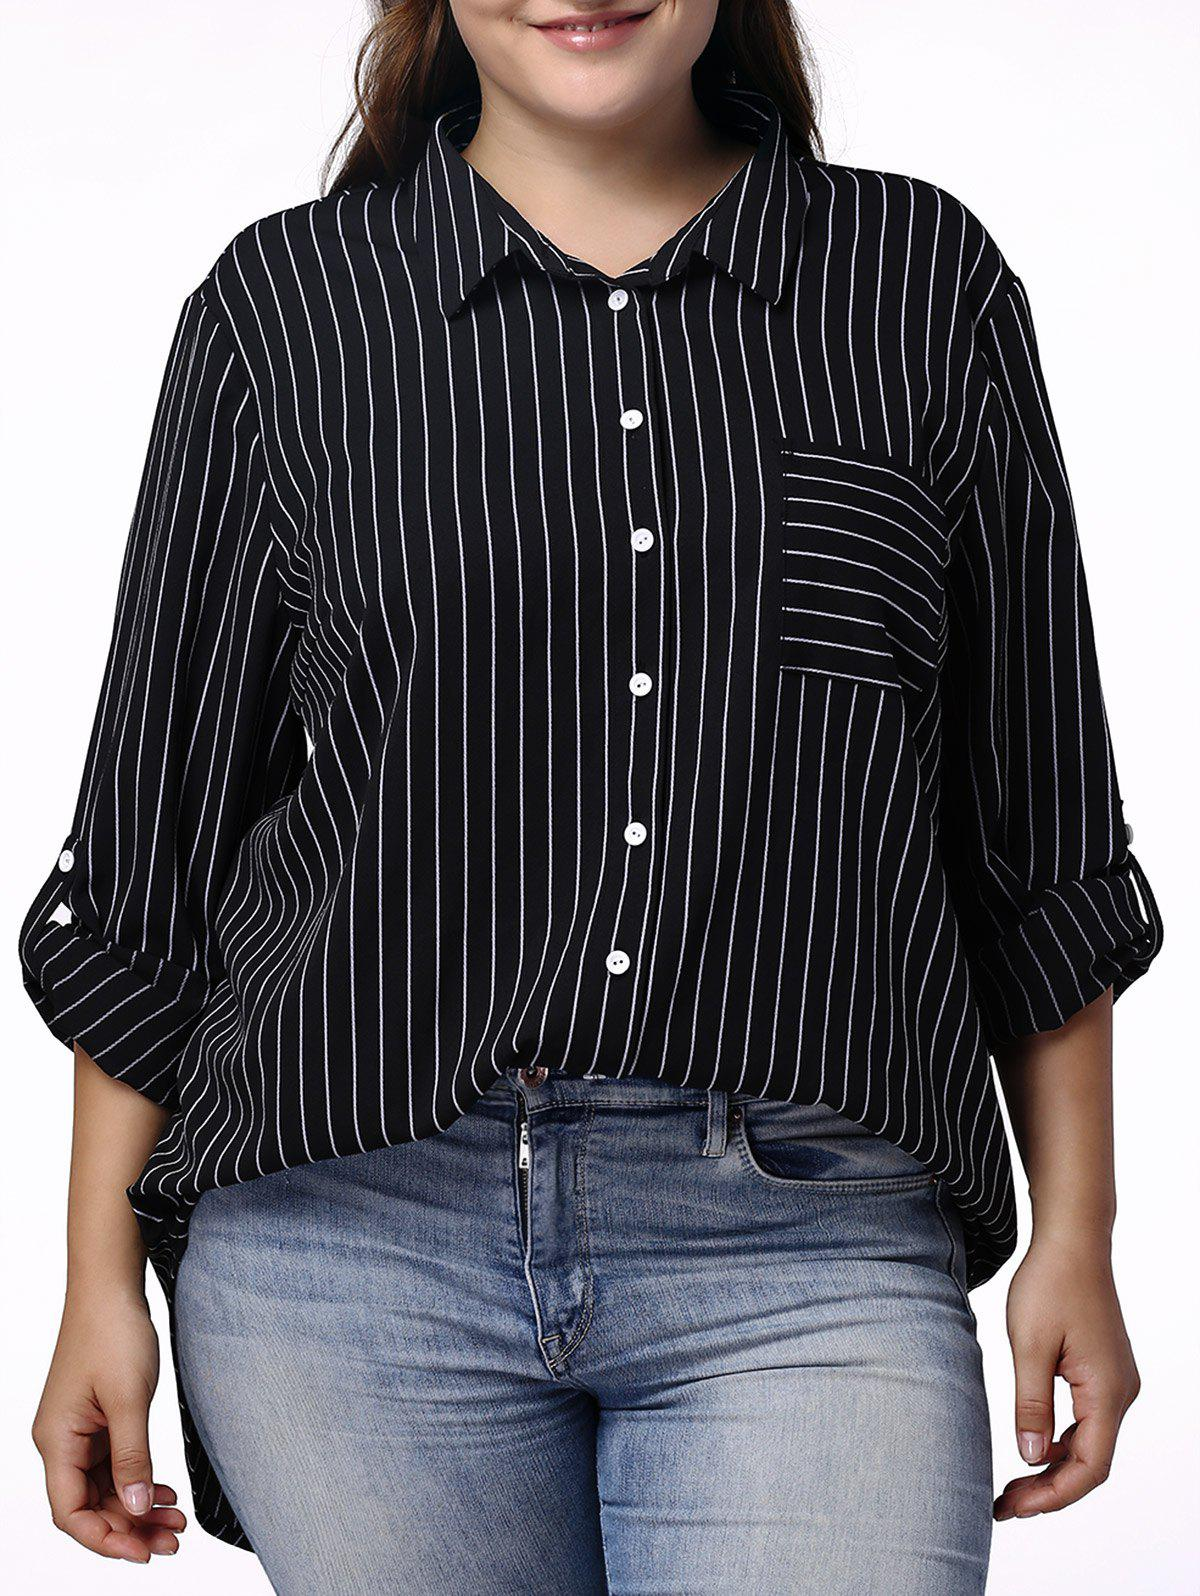 Casual Pinstriped 3/4 Sleeve Plus Size Shirt For Women - BLACK 5XL